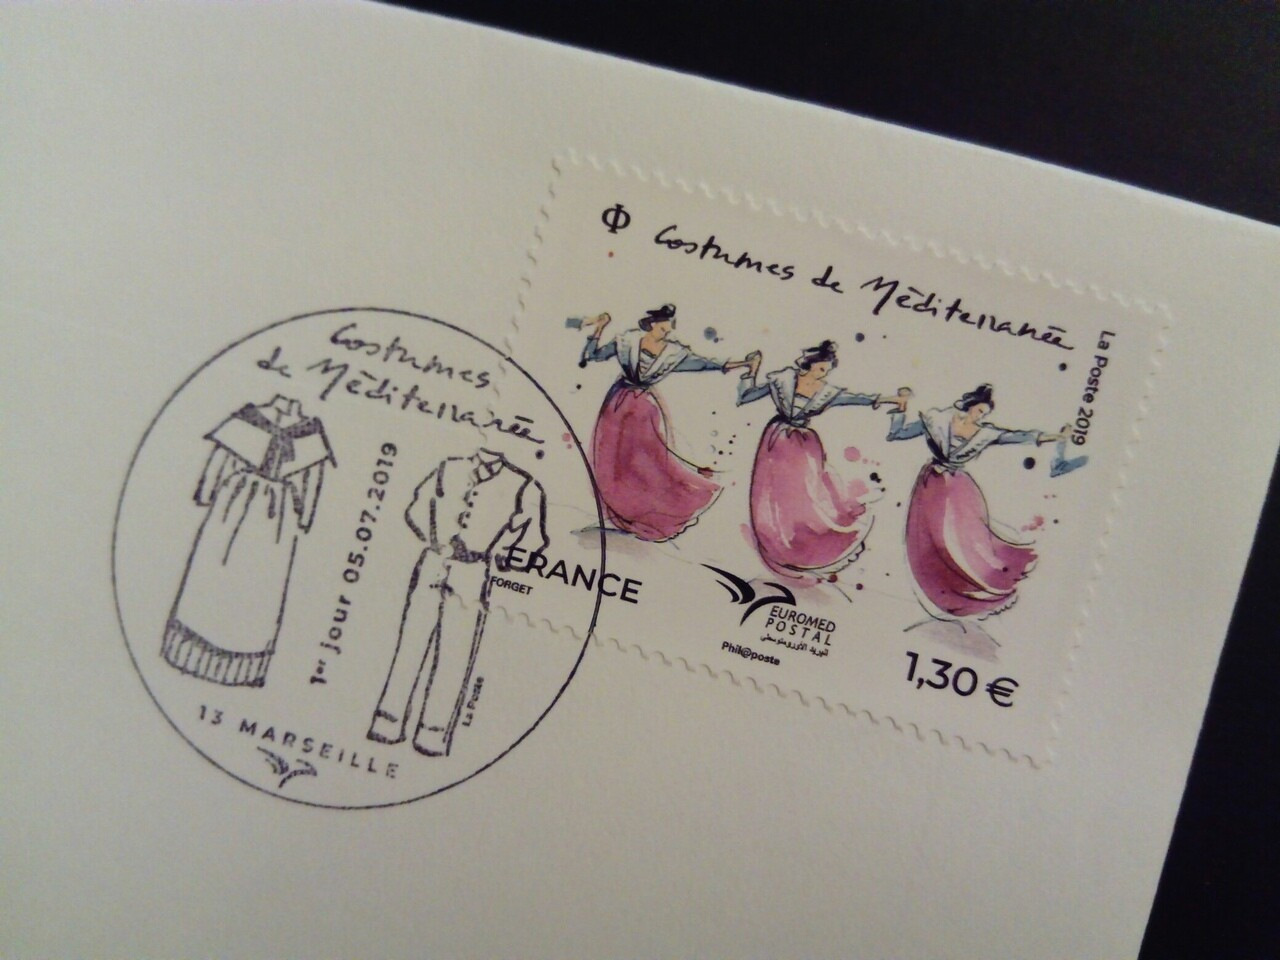 First day cover. Costumes de Méditerranée